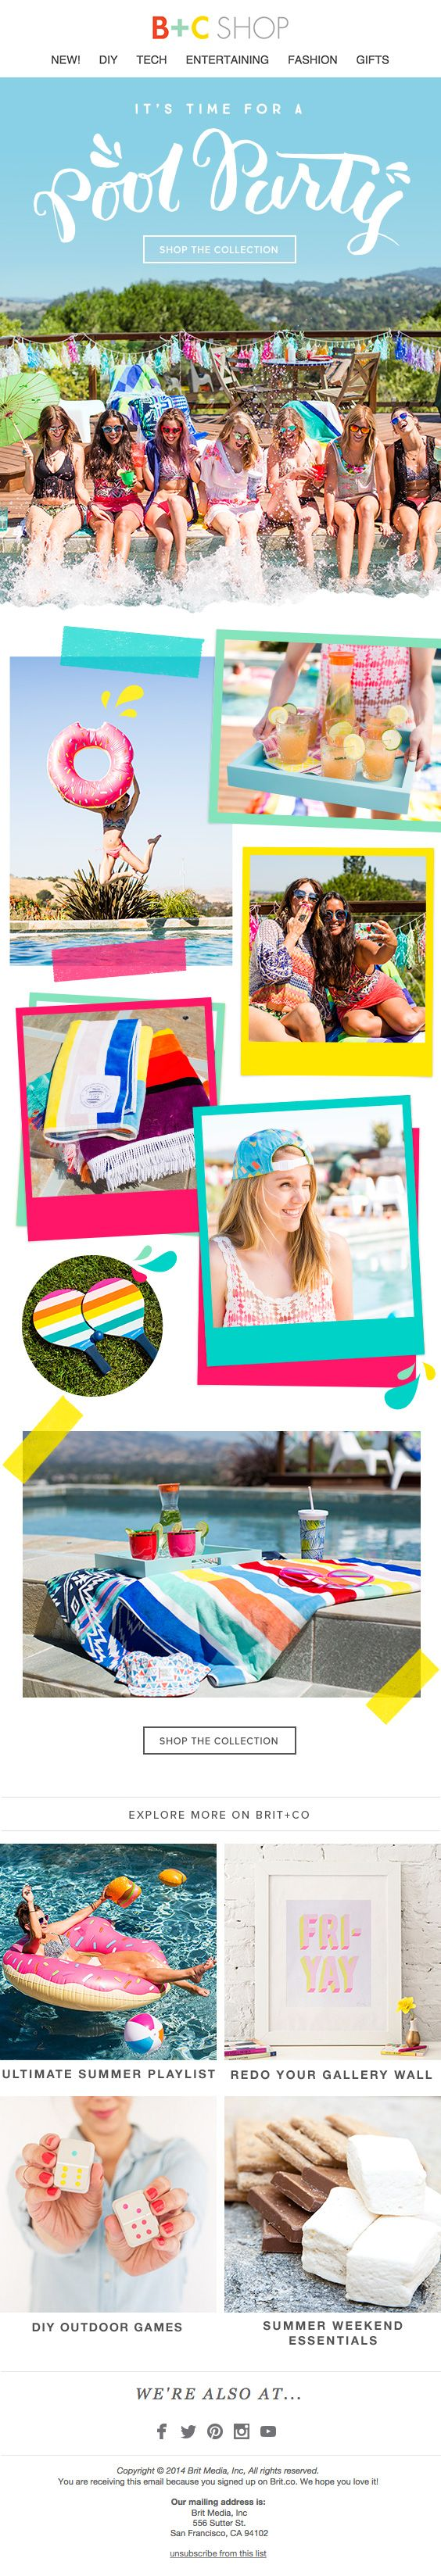 Summer Parties collection email design